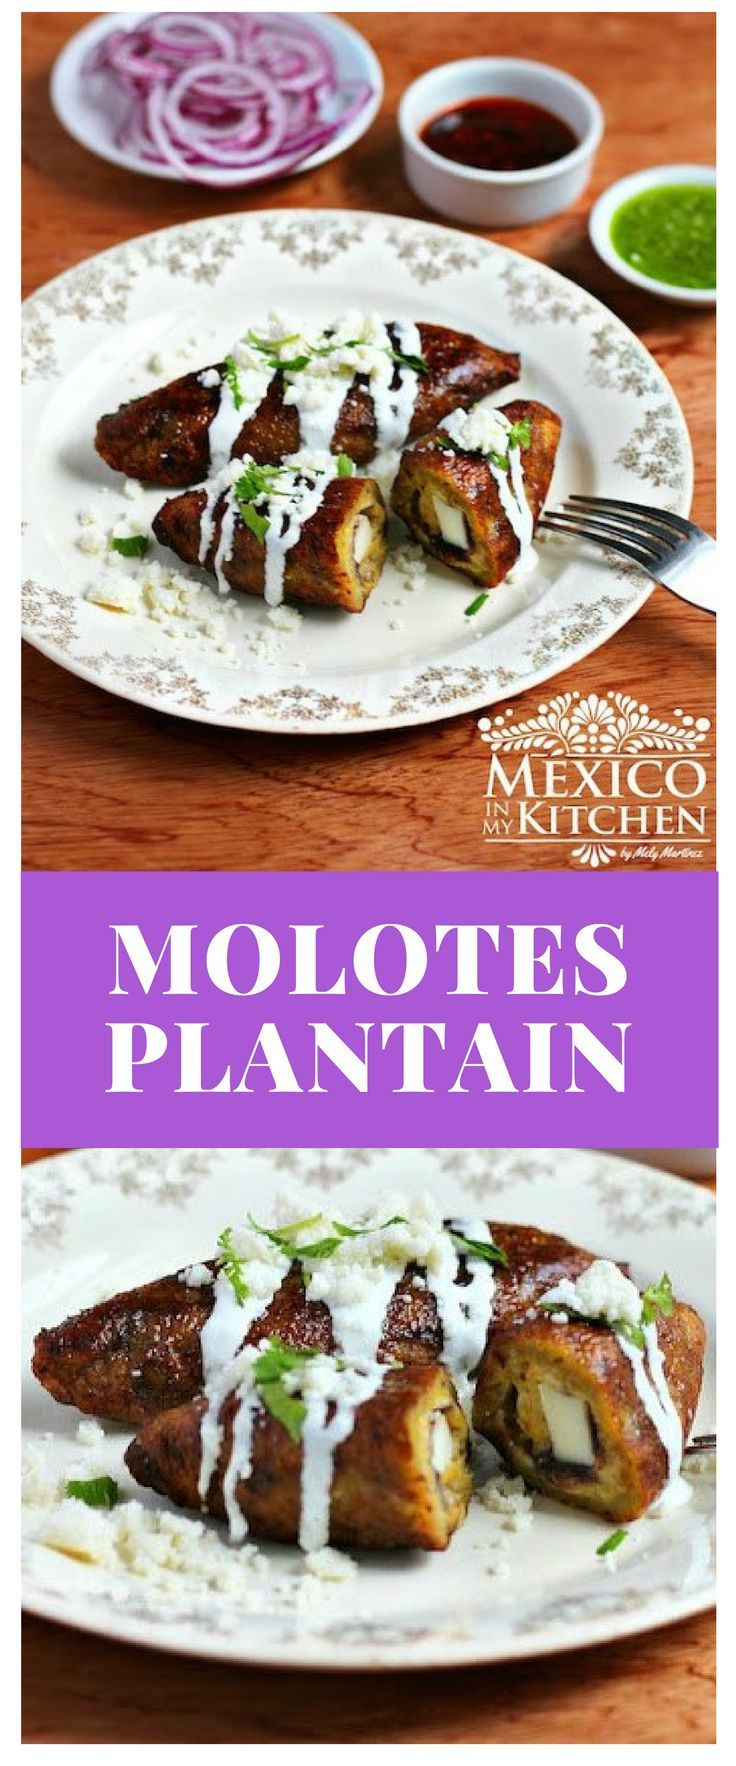 This recipe for Molotes Plantain is from the southern State of Oaxaca in Mexico. Molotes are stuffed with cheese and formed in a process similar to that of an empanada, except they have an oblong shape instead #mexican #recipe #food #antojitos #kitchen